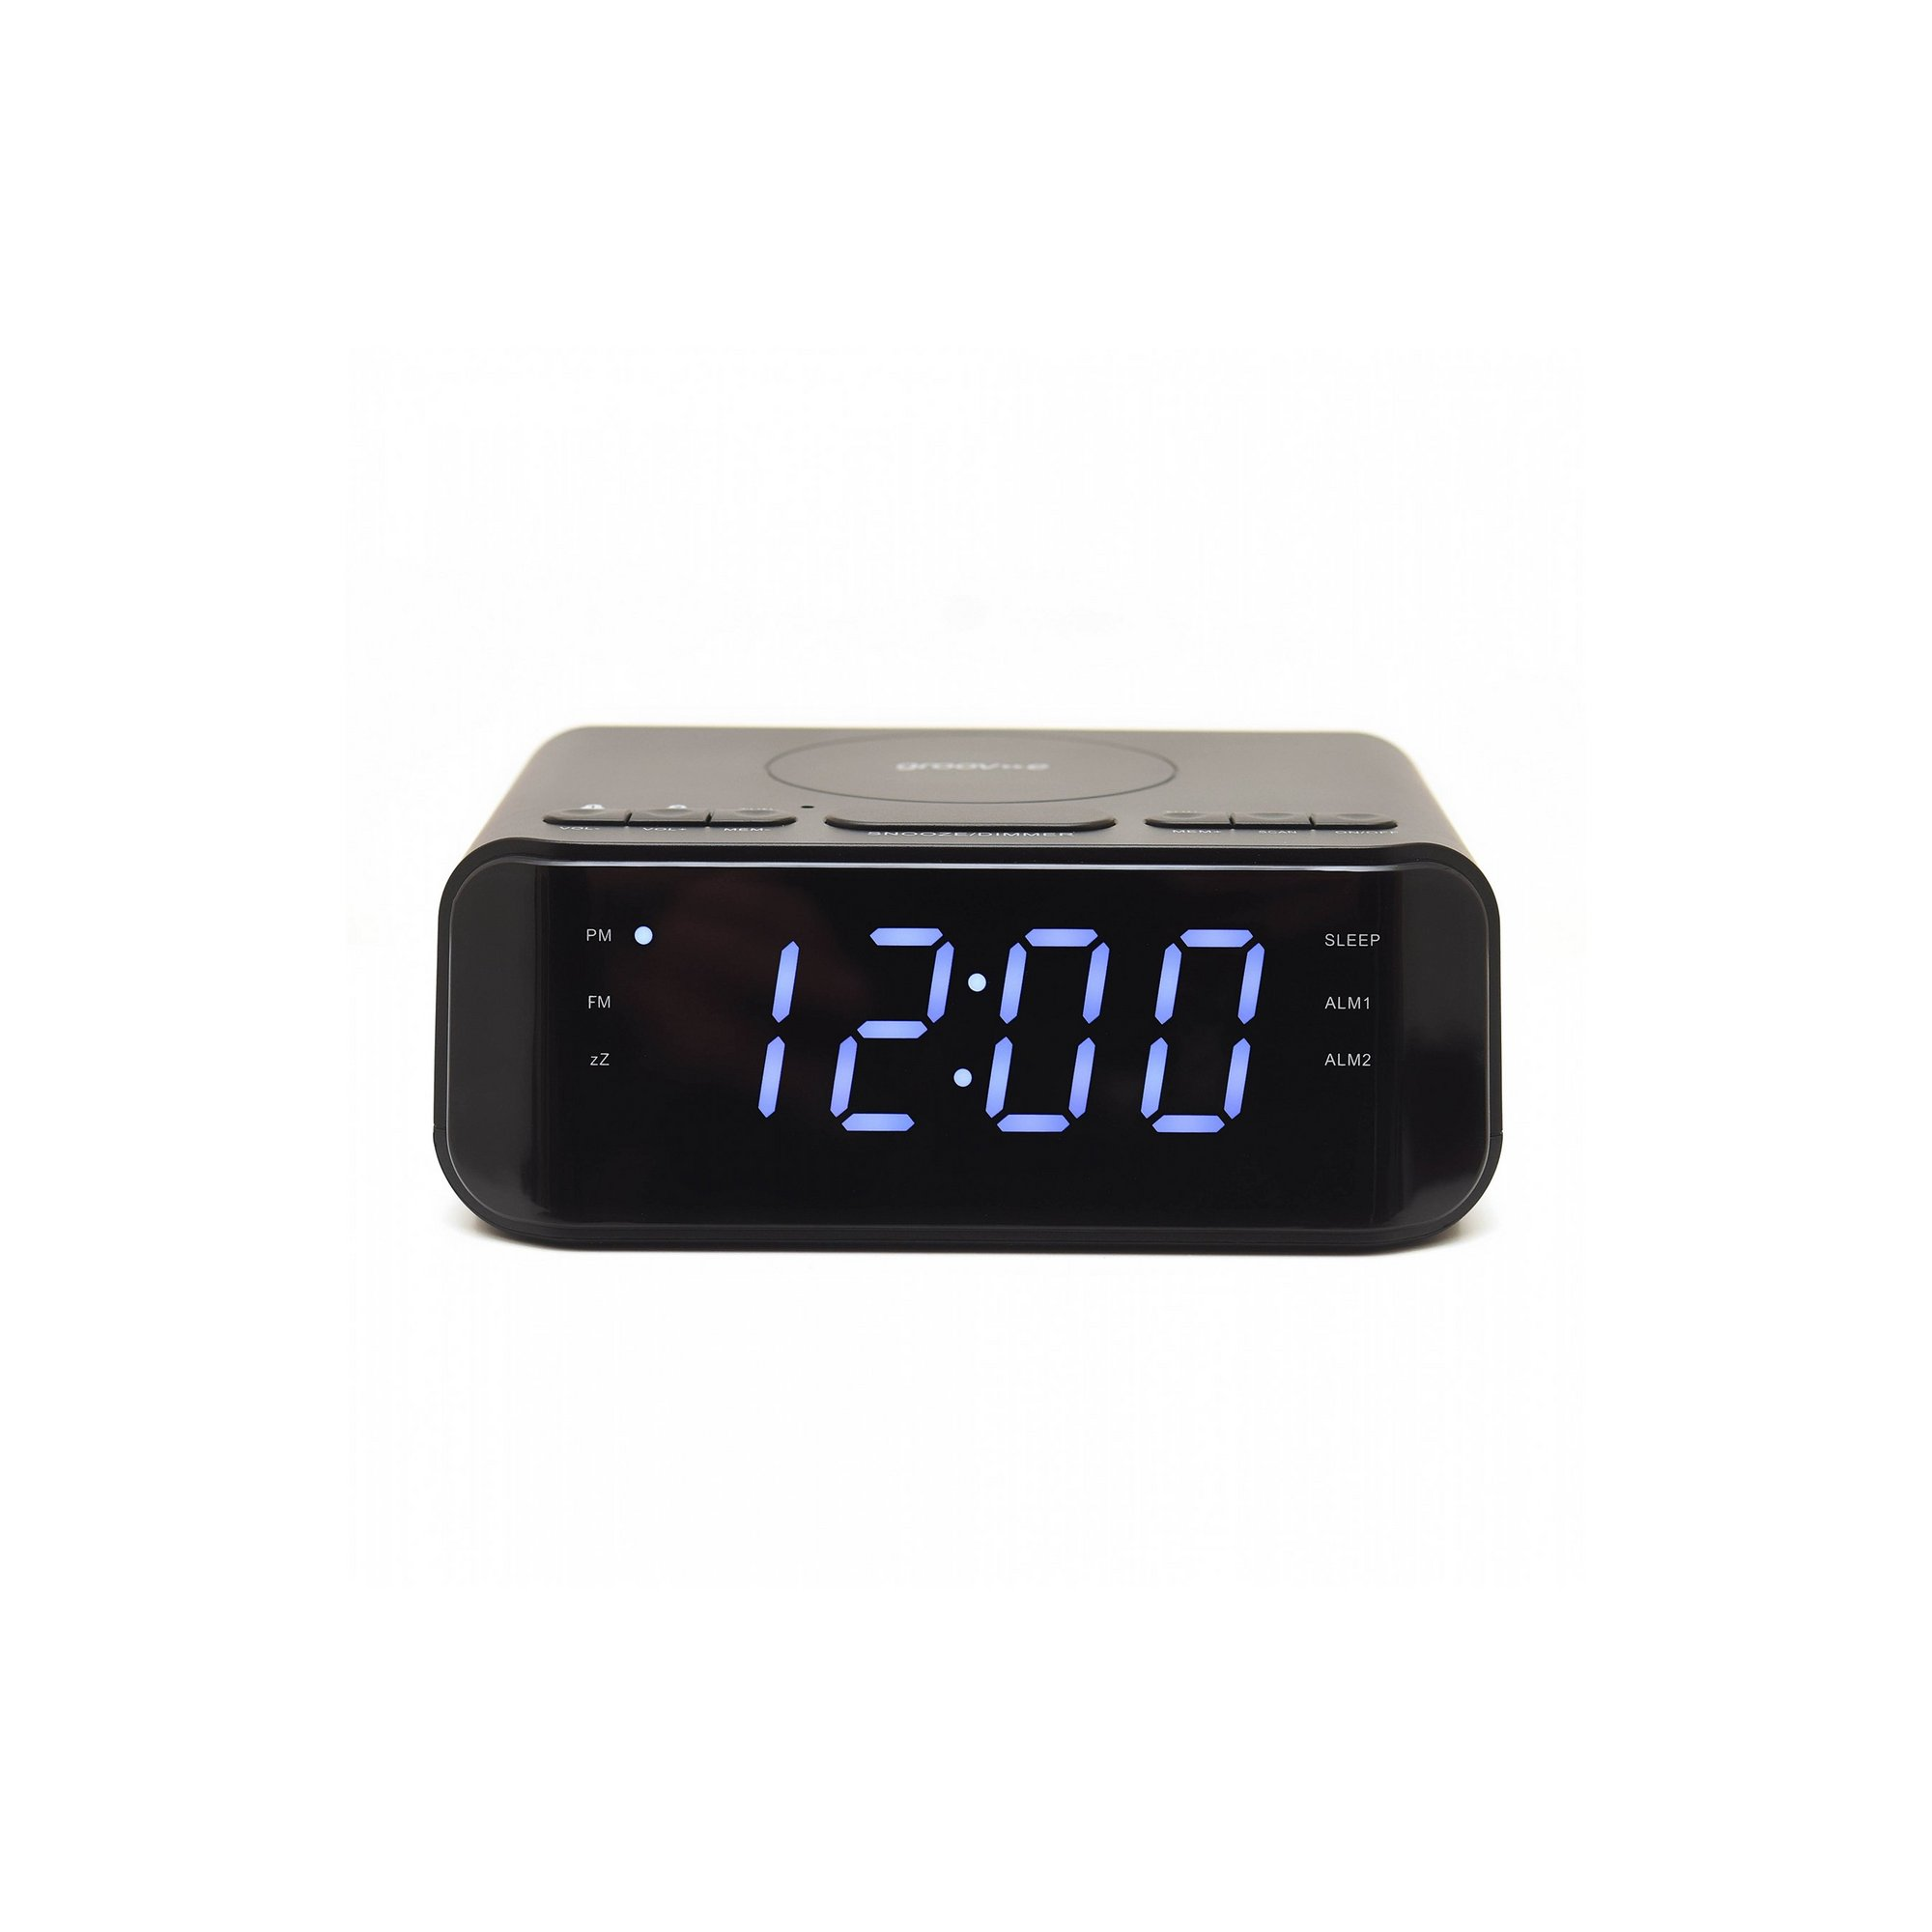 Image of Groov-e Atlas Alarm Clock Radio with USB and Wireless Charging